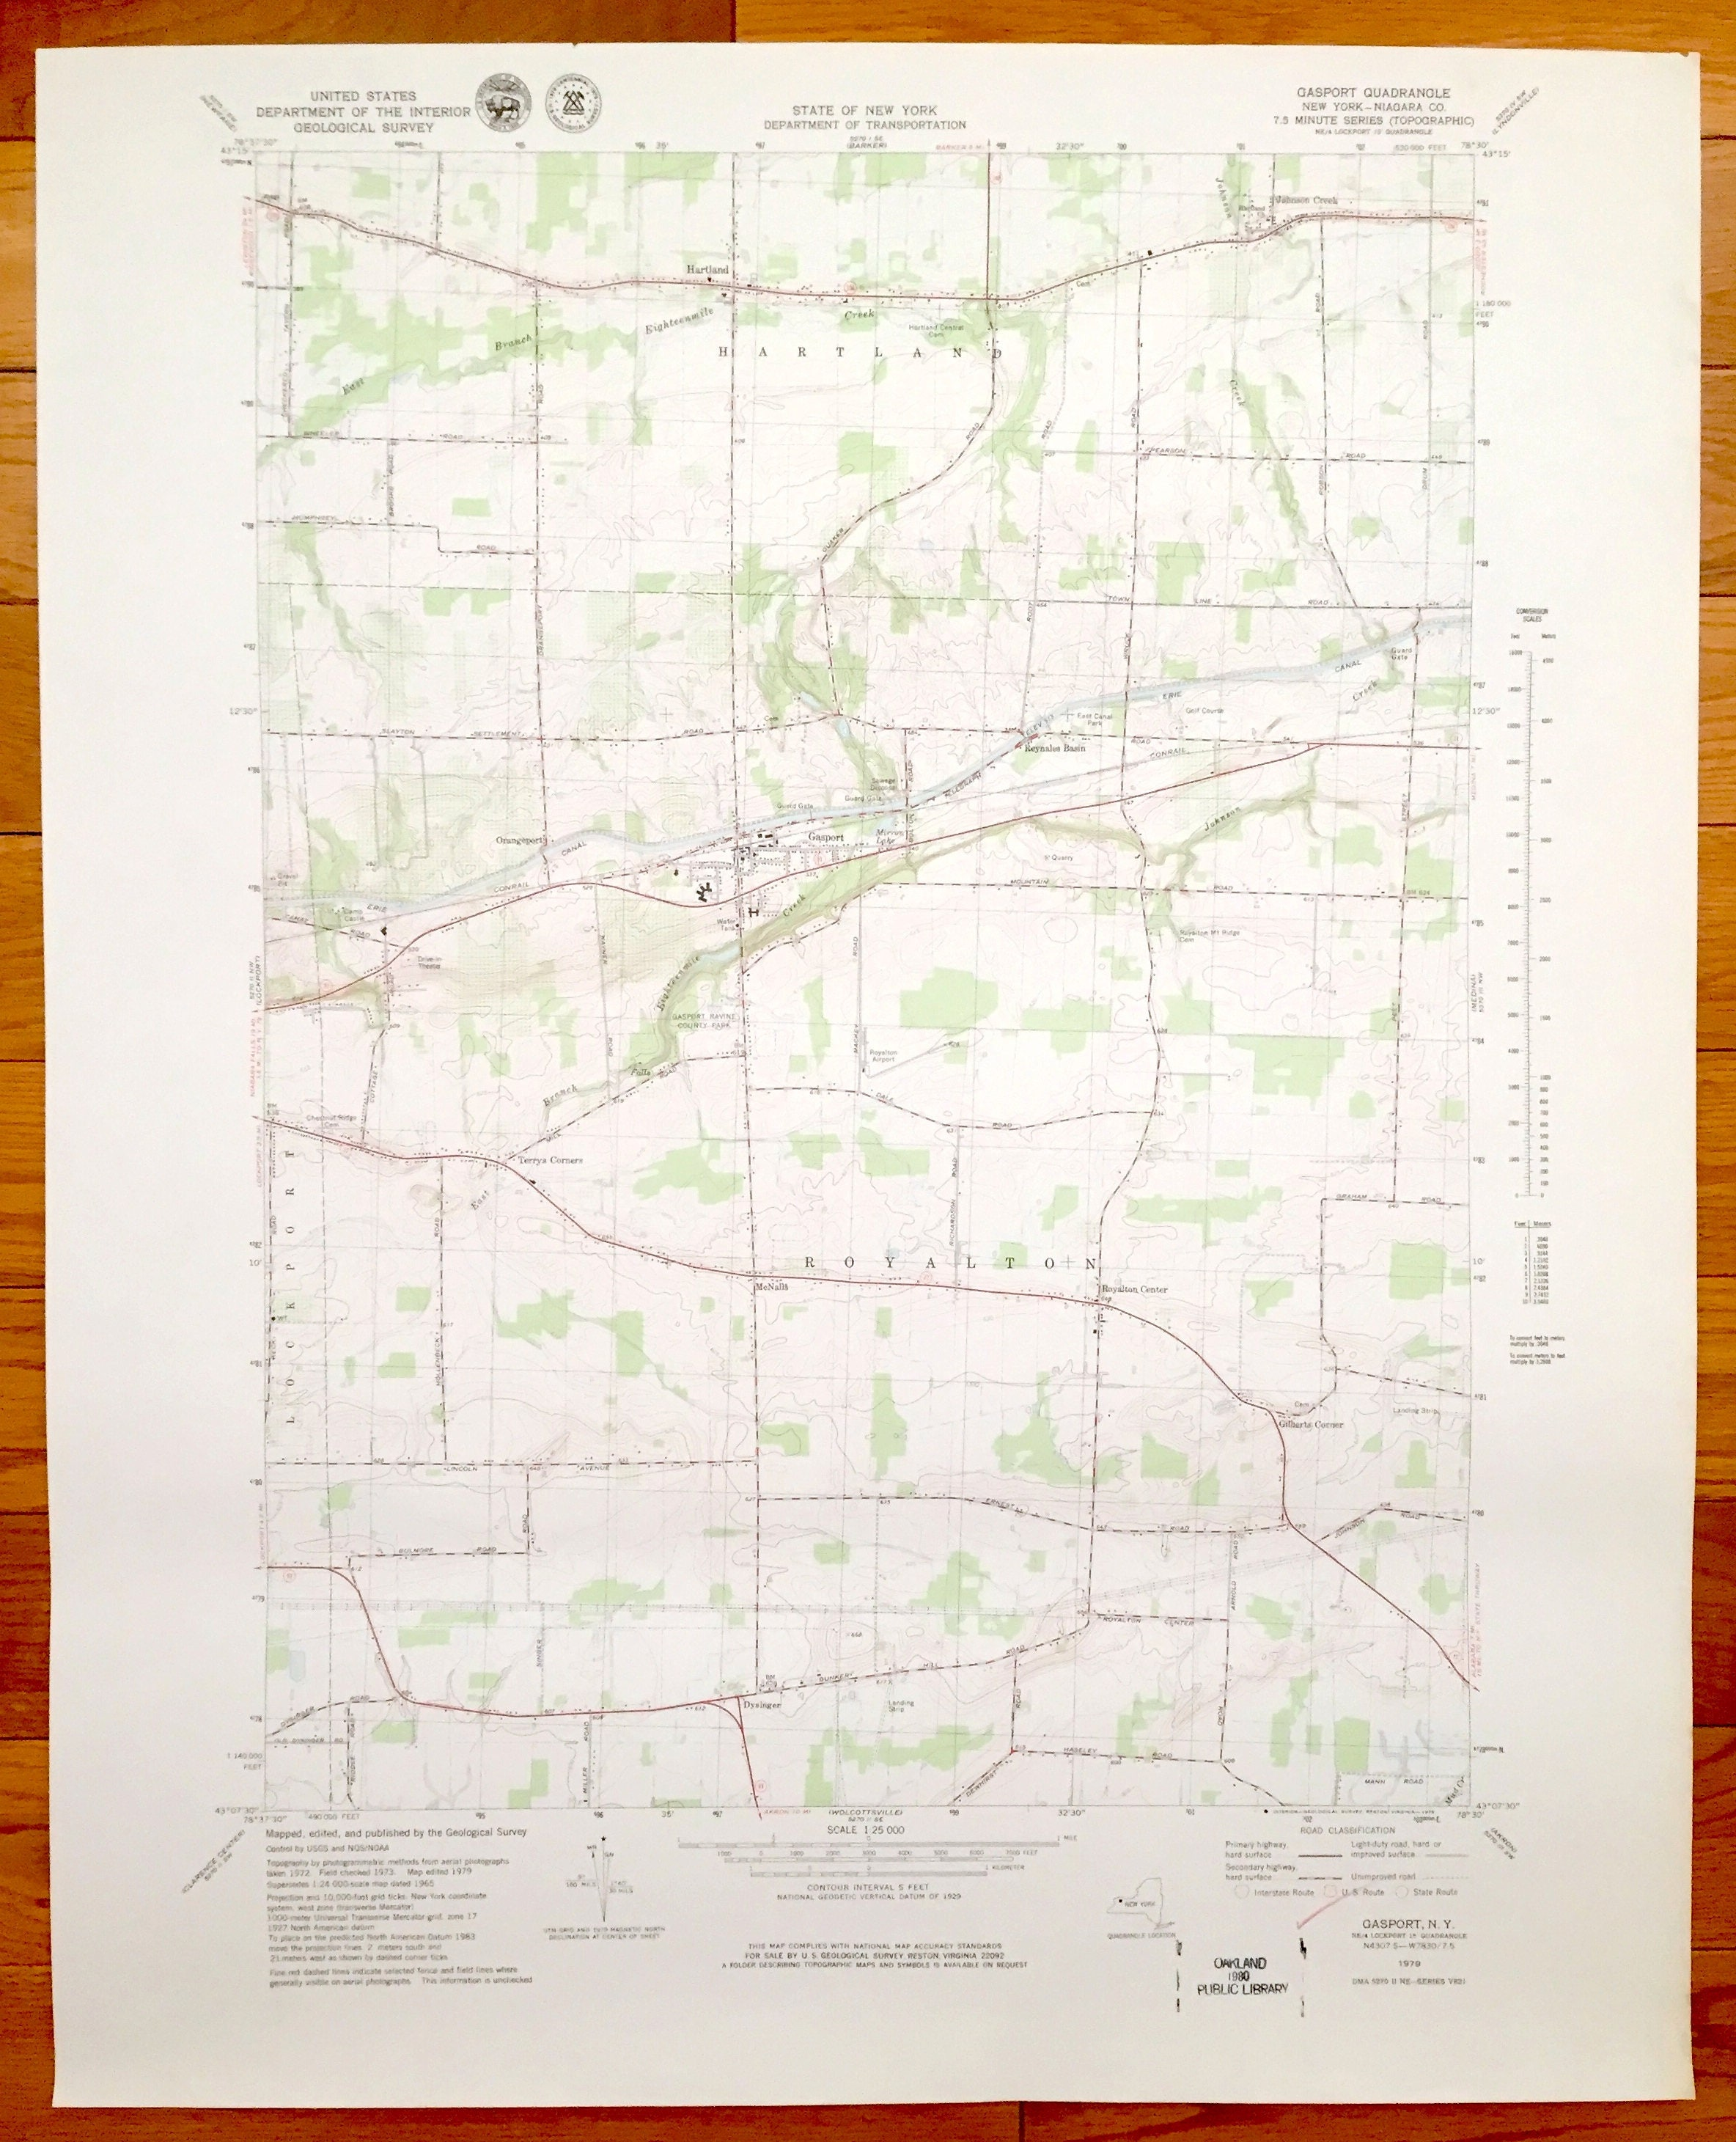 Antique Gasport, New York 1979 US Geological Survey Topographic Map –  Royalton, Hartland, Dysinger, Terrys Corners, Lockport, Reynales Basin